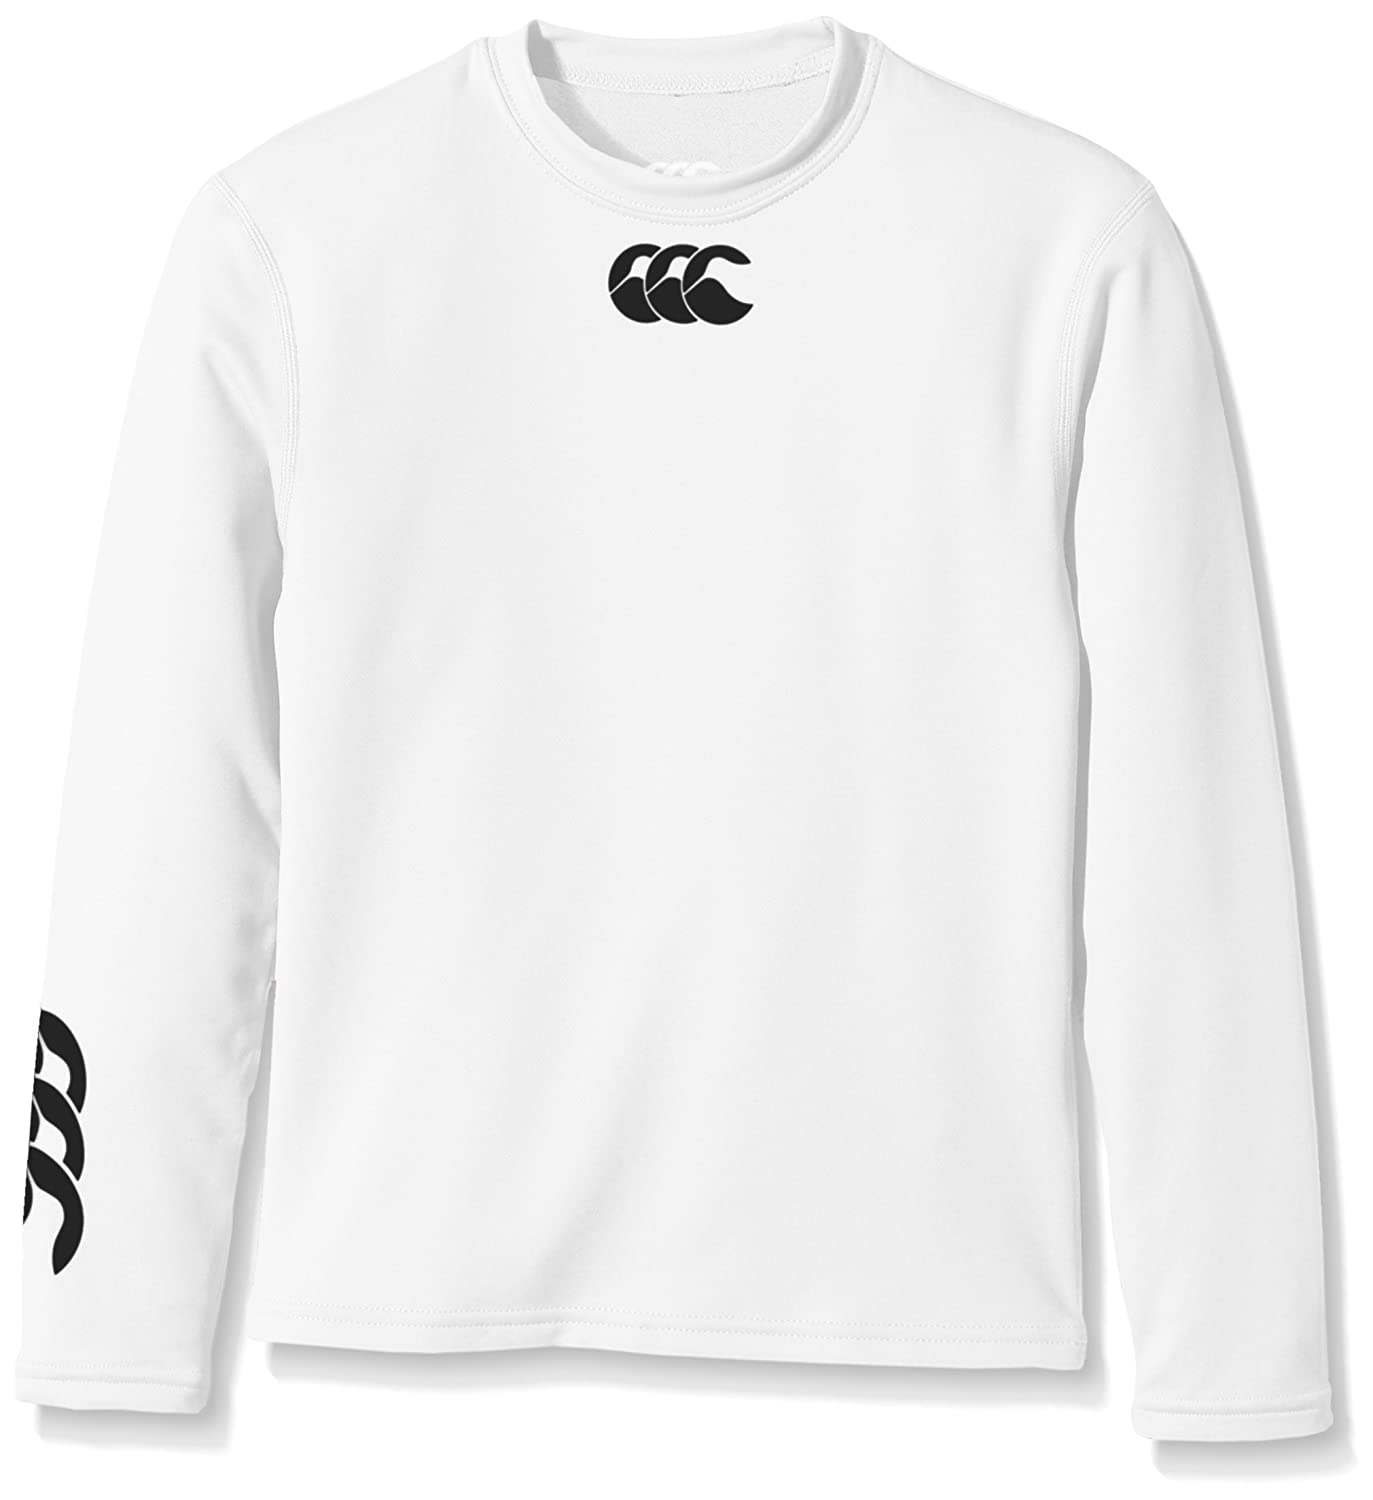 CANTERBURY Base Layer Manica Lunga Junior, Bianco, Junior L E744110